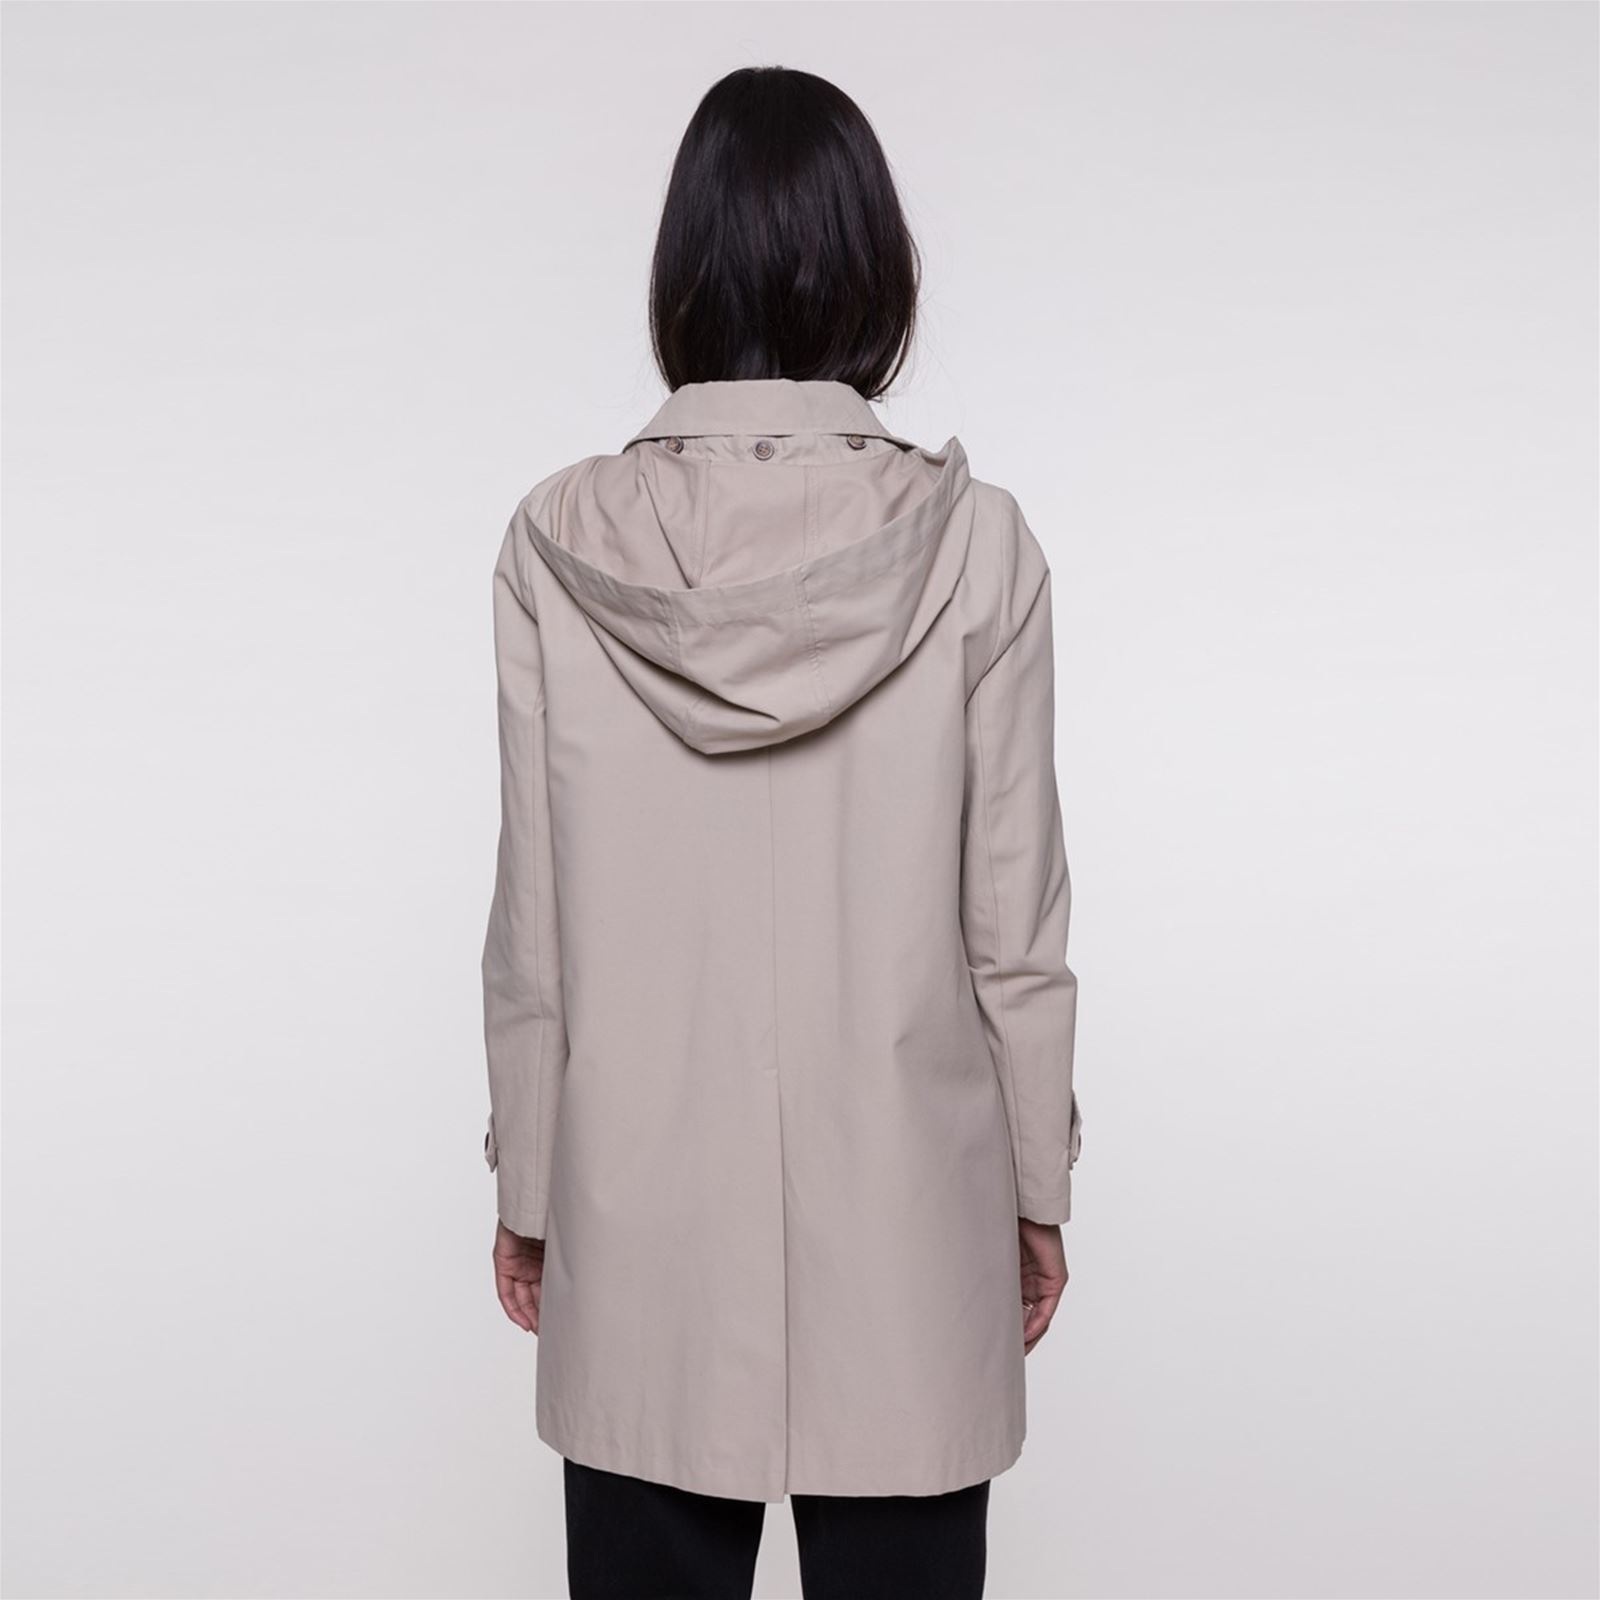 Trench Trench V And CoatBeige CoatBeige Femme Trench Femme V And ZkOiuPX